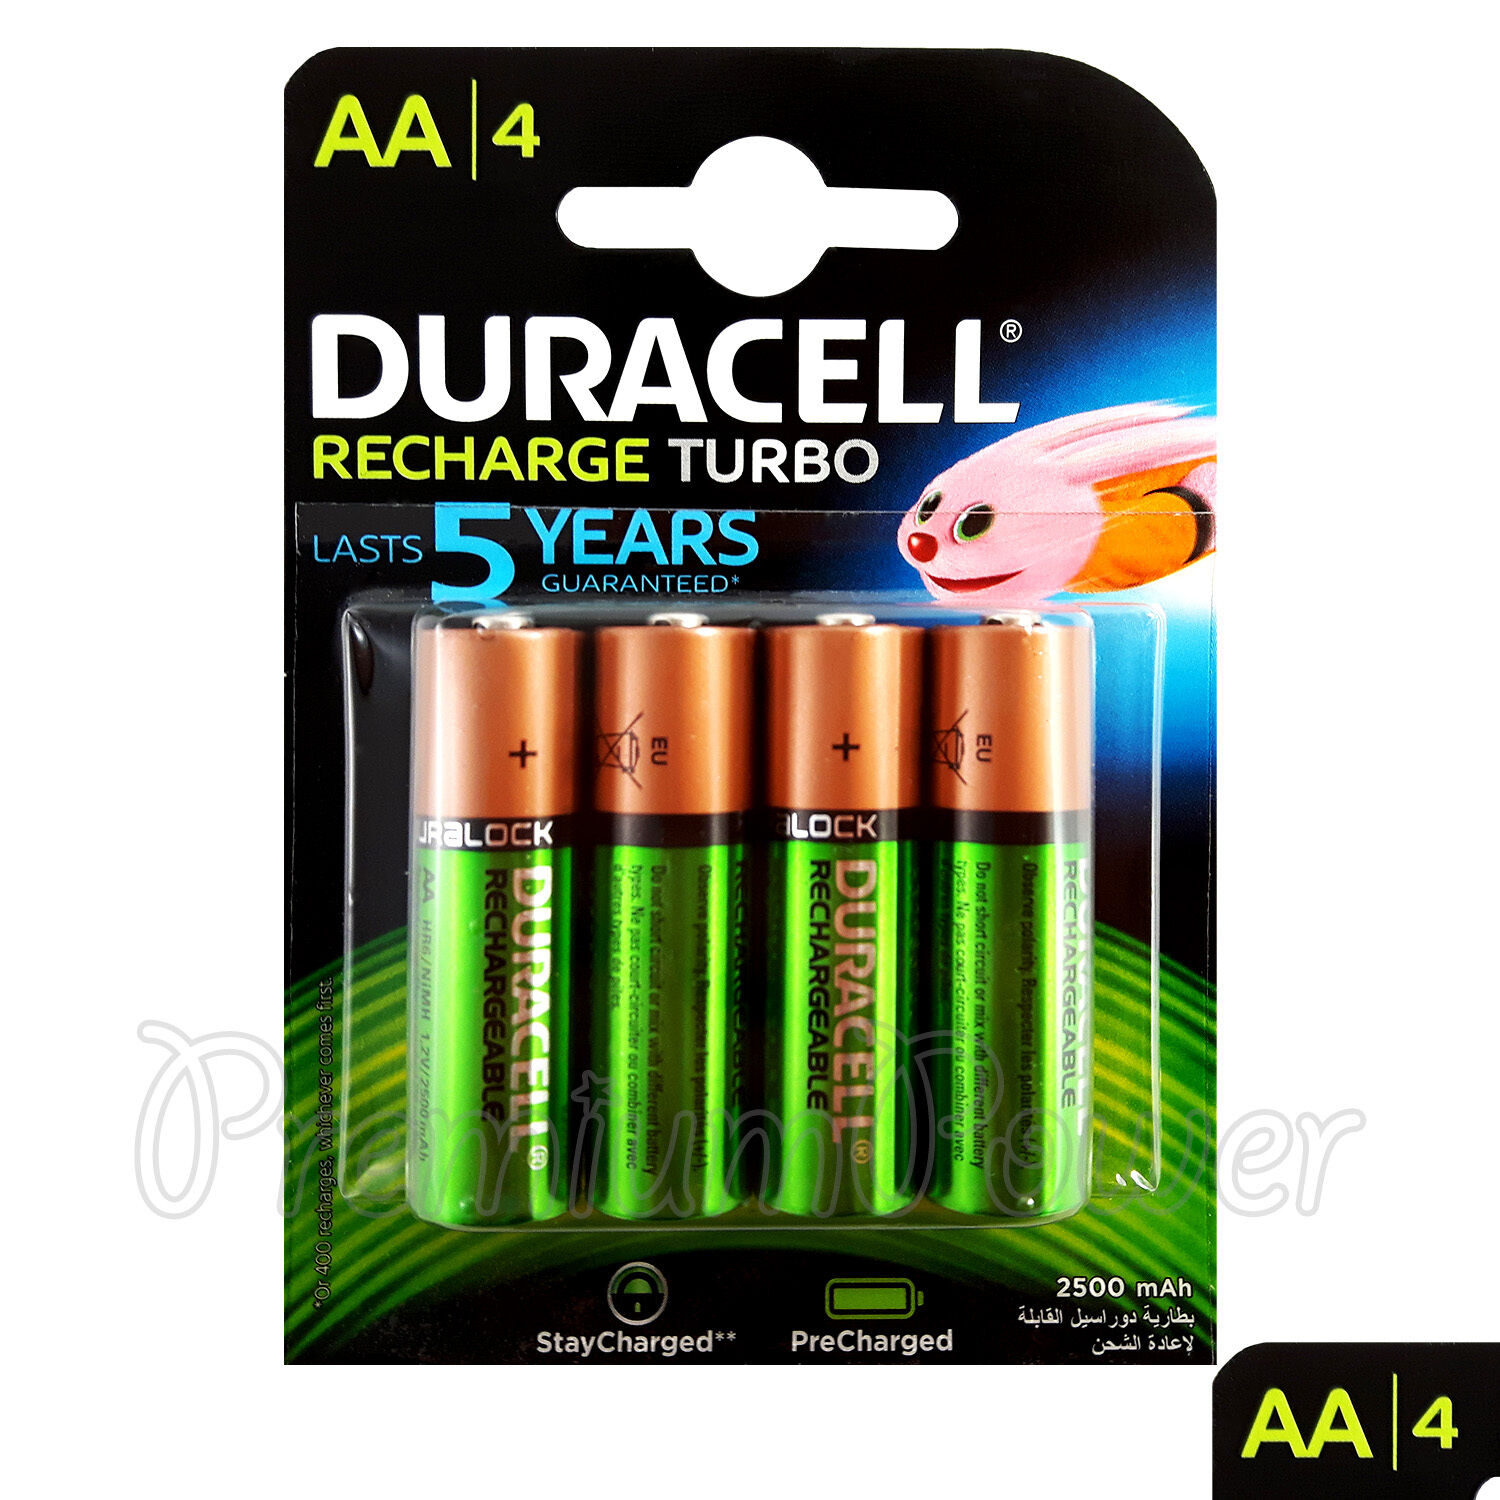 4 X Duracell Rechargeable Aa Batteries 2500 Mah Replaces 2400 Batre Cas Energizer Recharge Maxi A2 1 Of 1free Shipping